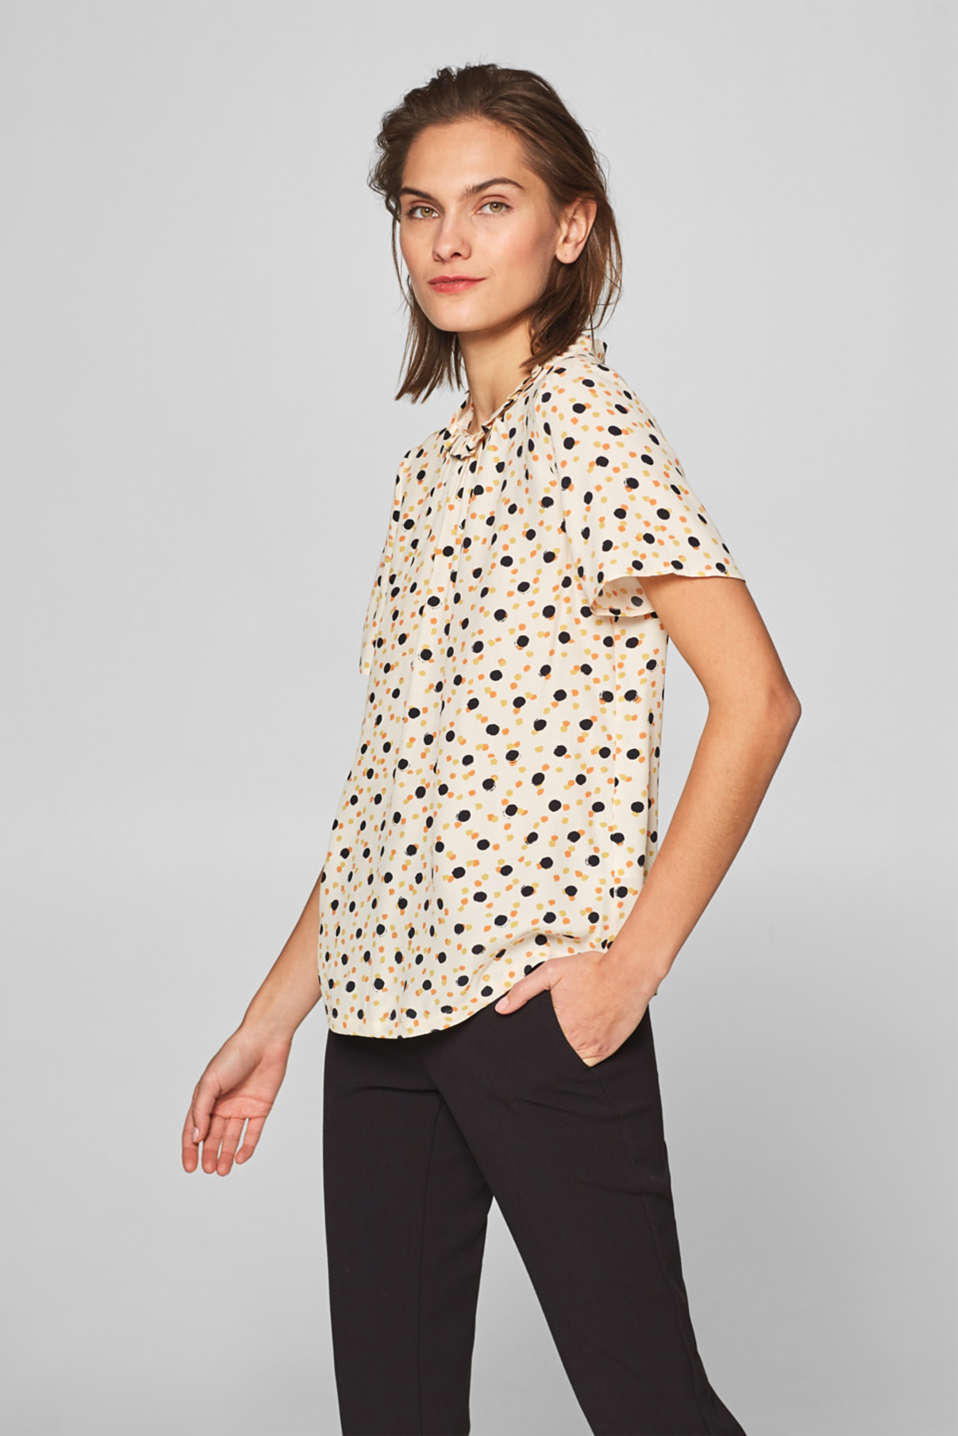 Esprit - Blusa in crêpe con stampa e colletto alto con ruches